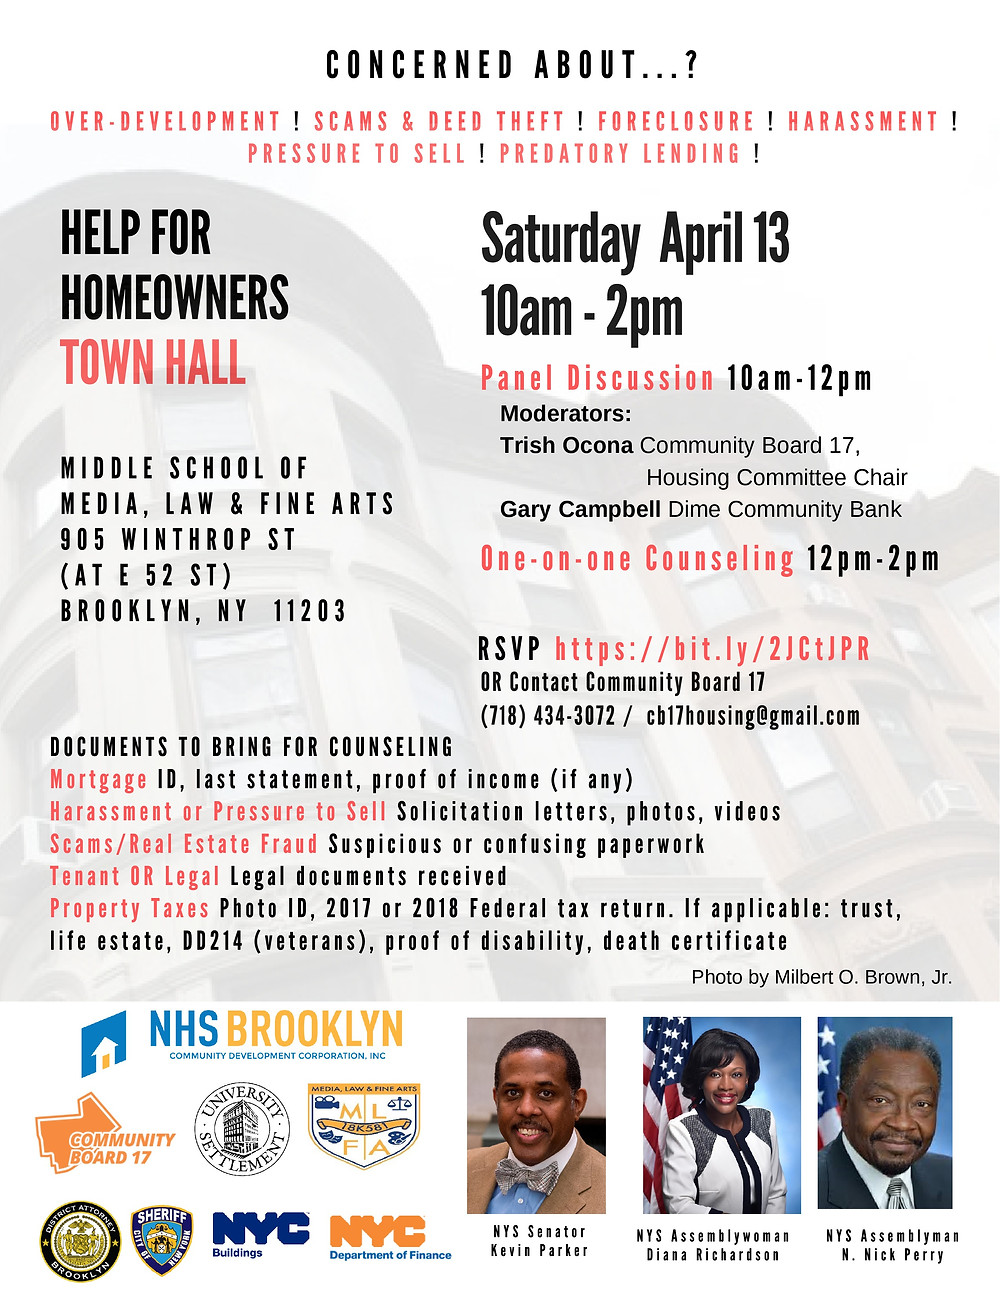 Town Hall NHS Brooklyn Community Board 17 2019